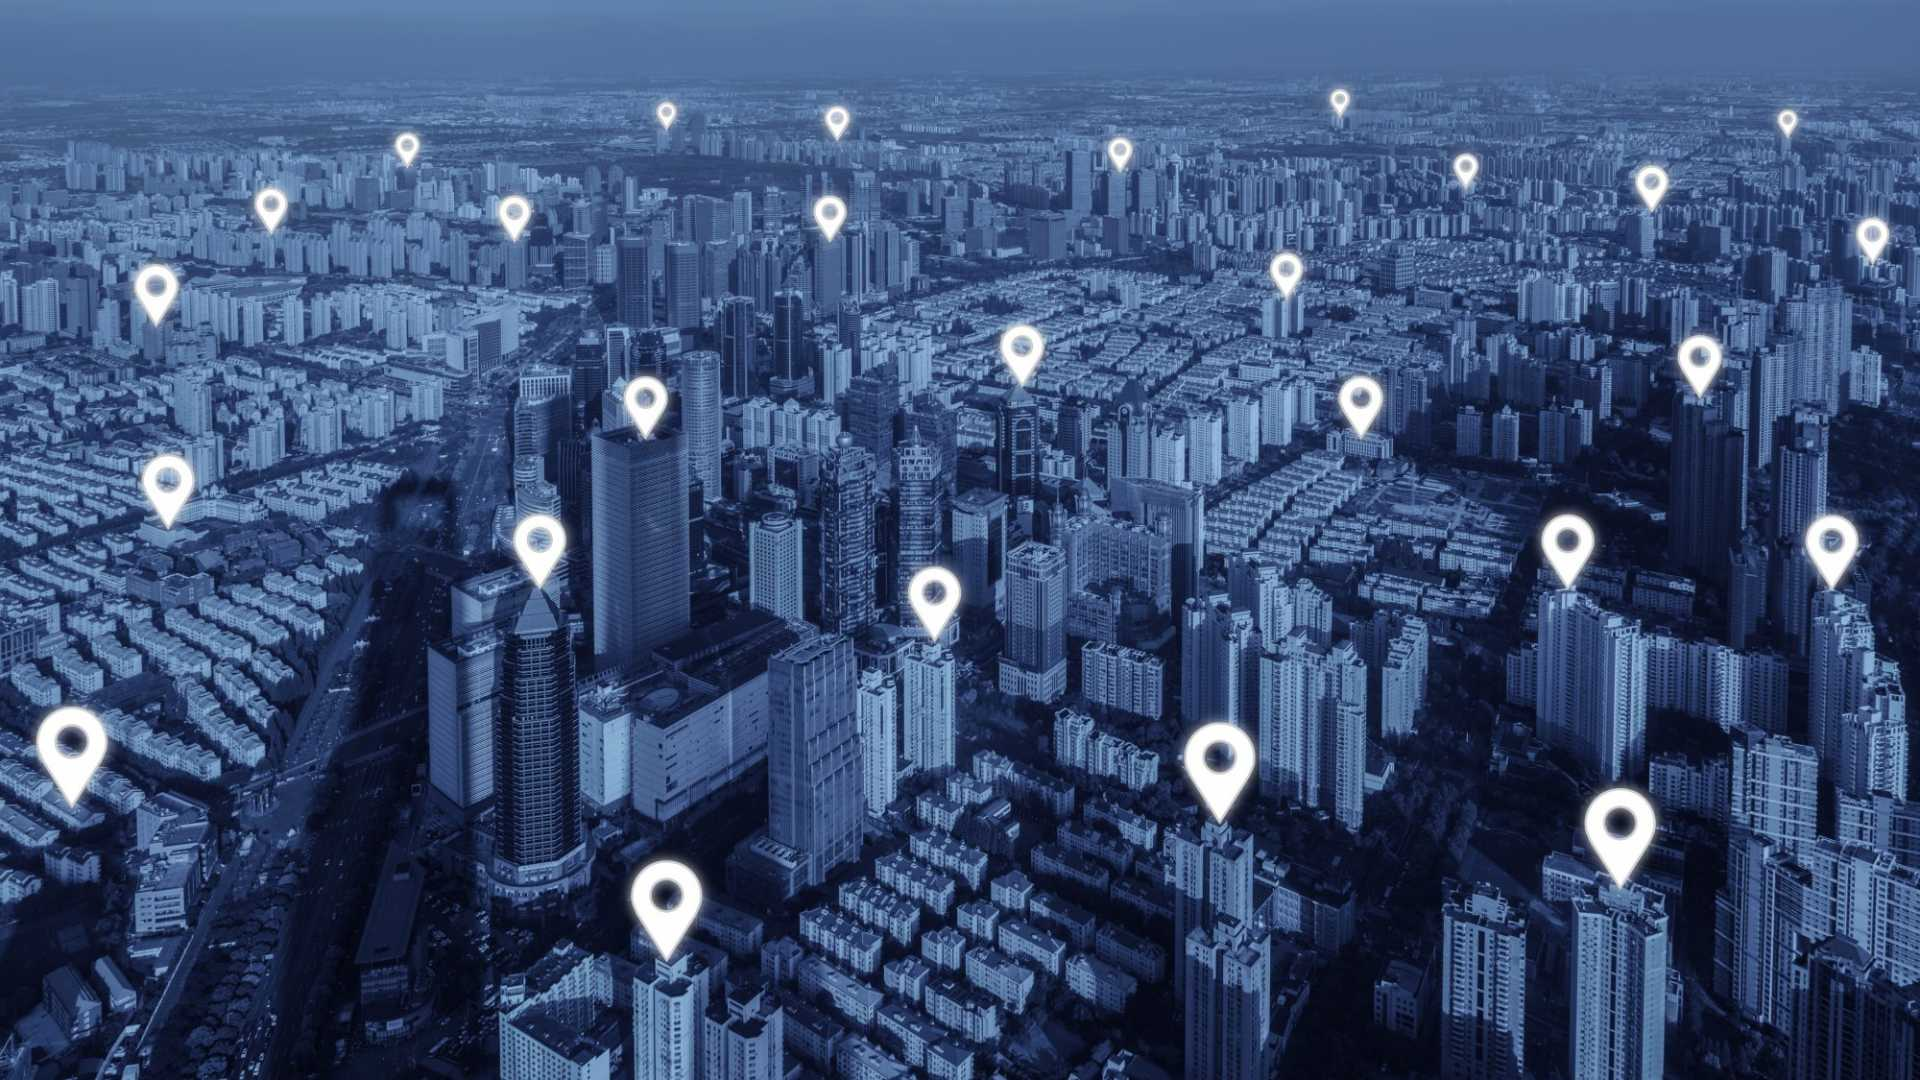 <b>5 Things You Didn't Know About Location-Based Marketing (But Probably Should)</b>